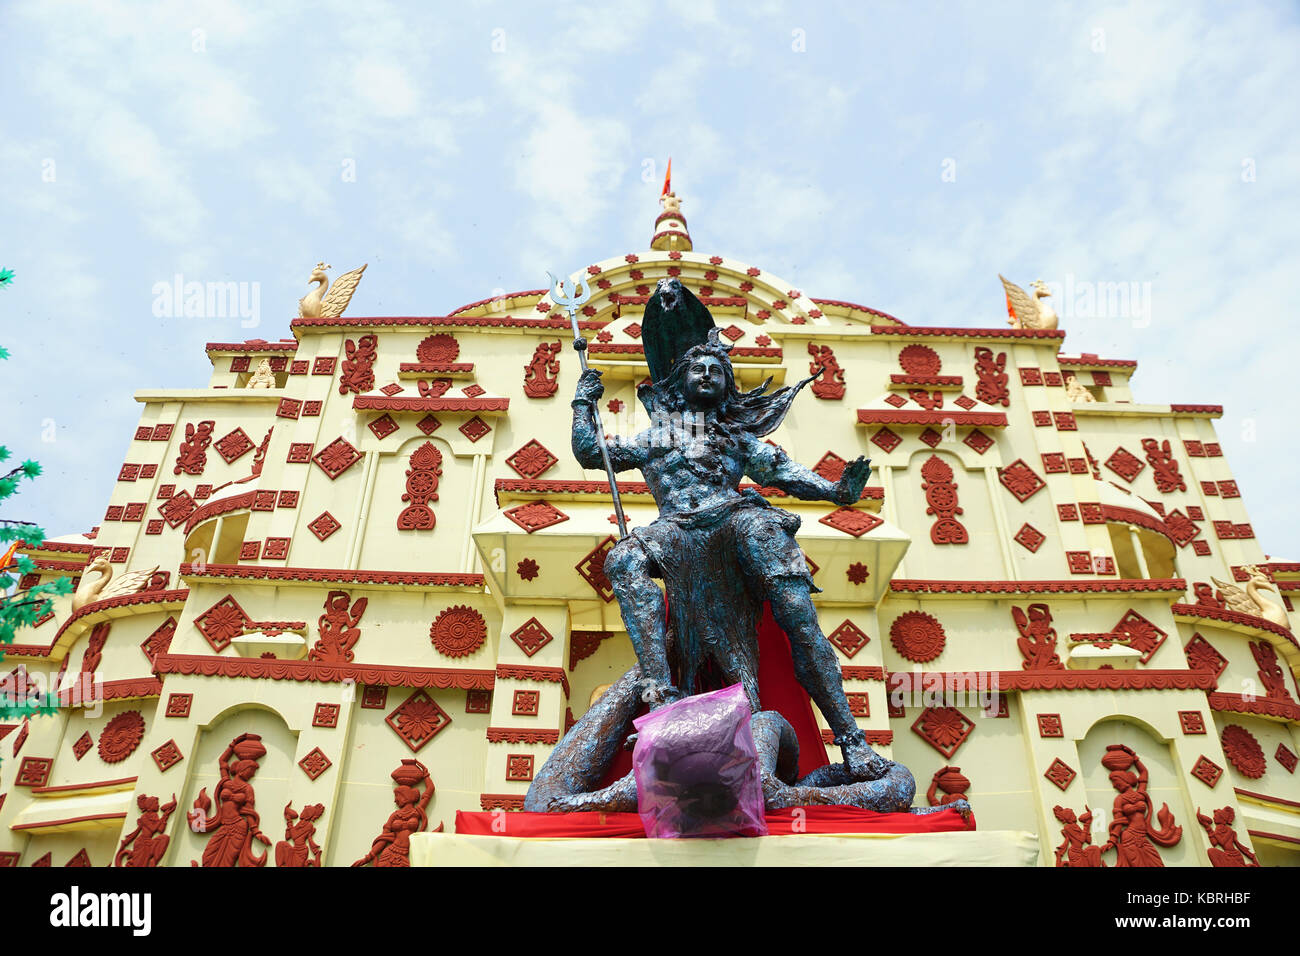 The Idol of Lord Shiva and Durga Puja Pandal - Stock Image